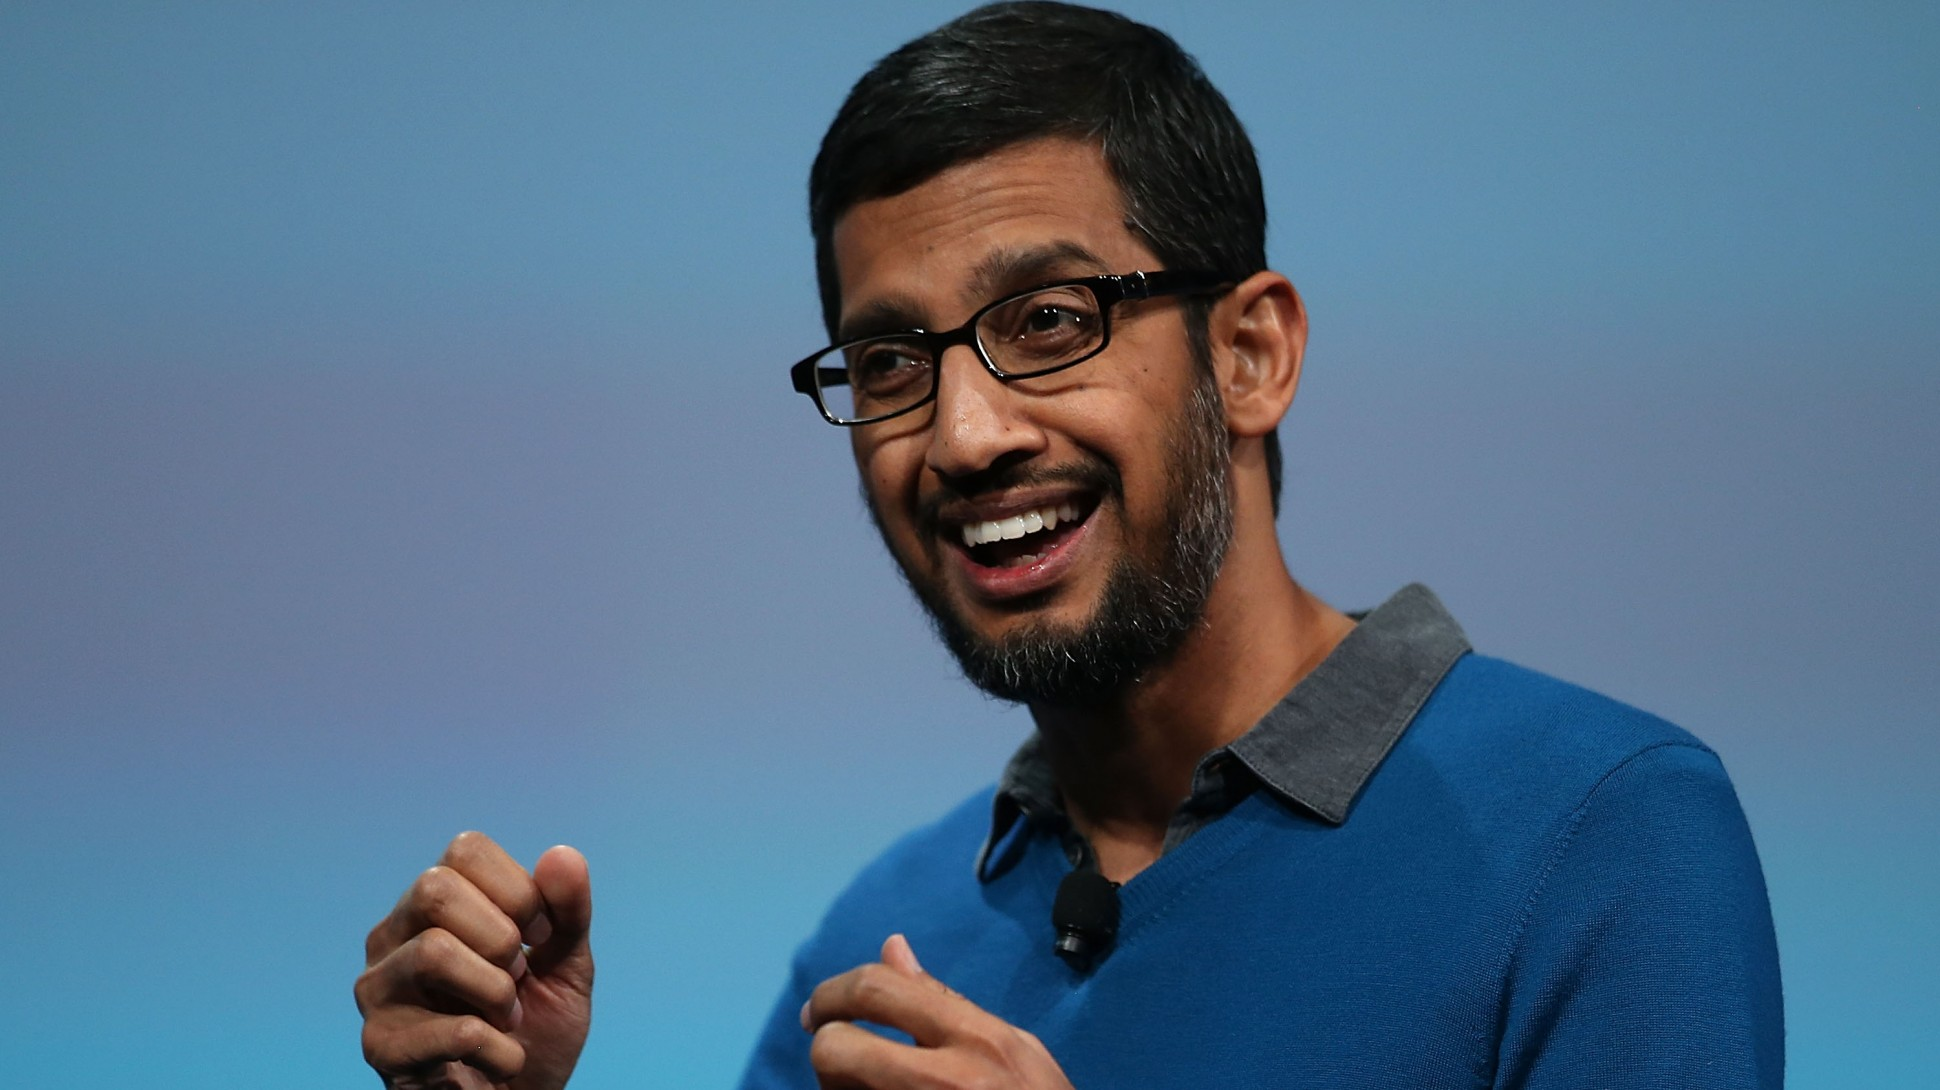 Google CEO Sundar Pichai was paid $100 million last year